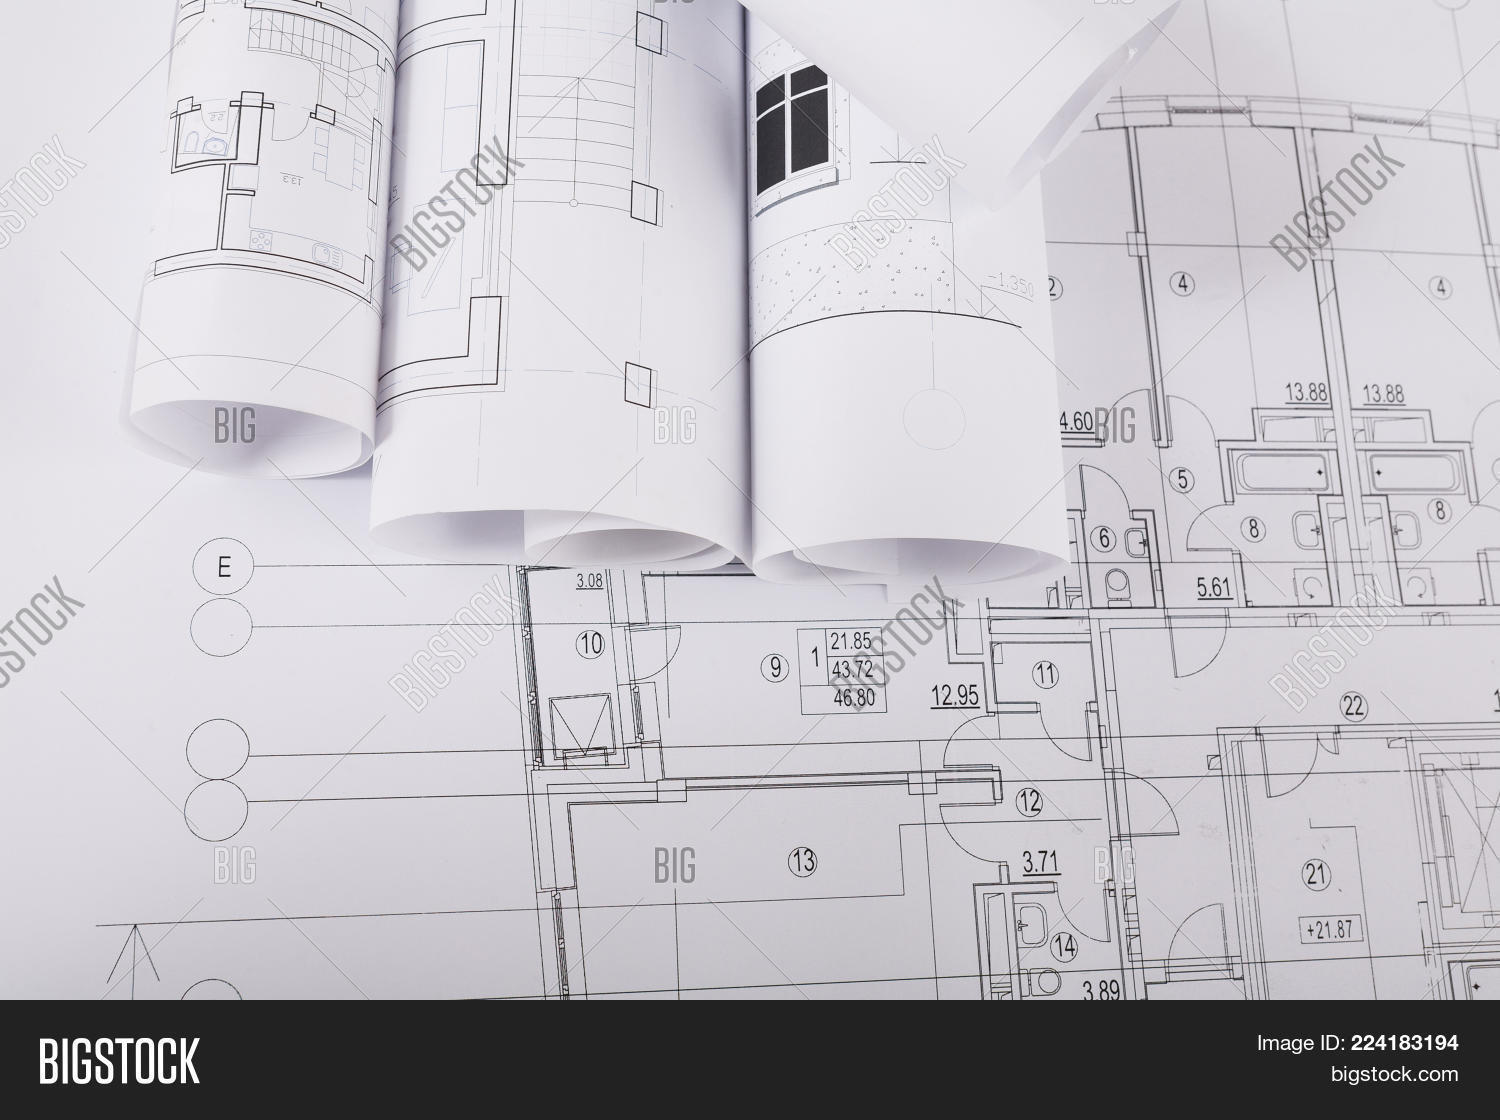 Plans Building Image Photo Free Trial Bigstock